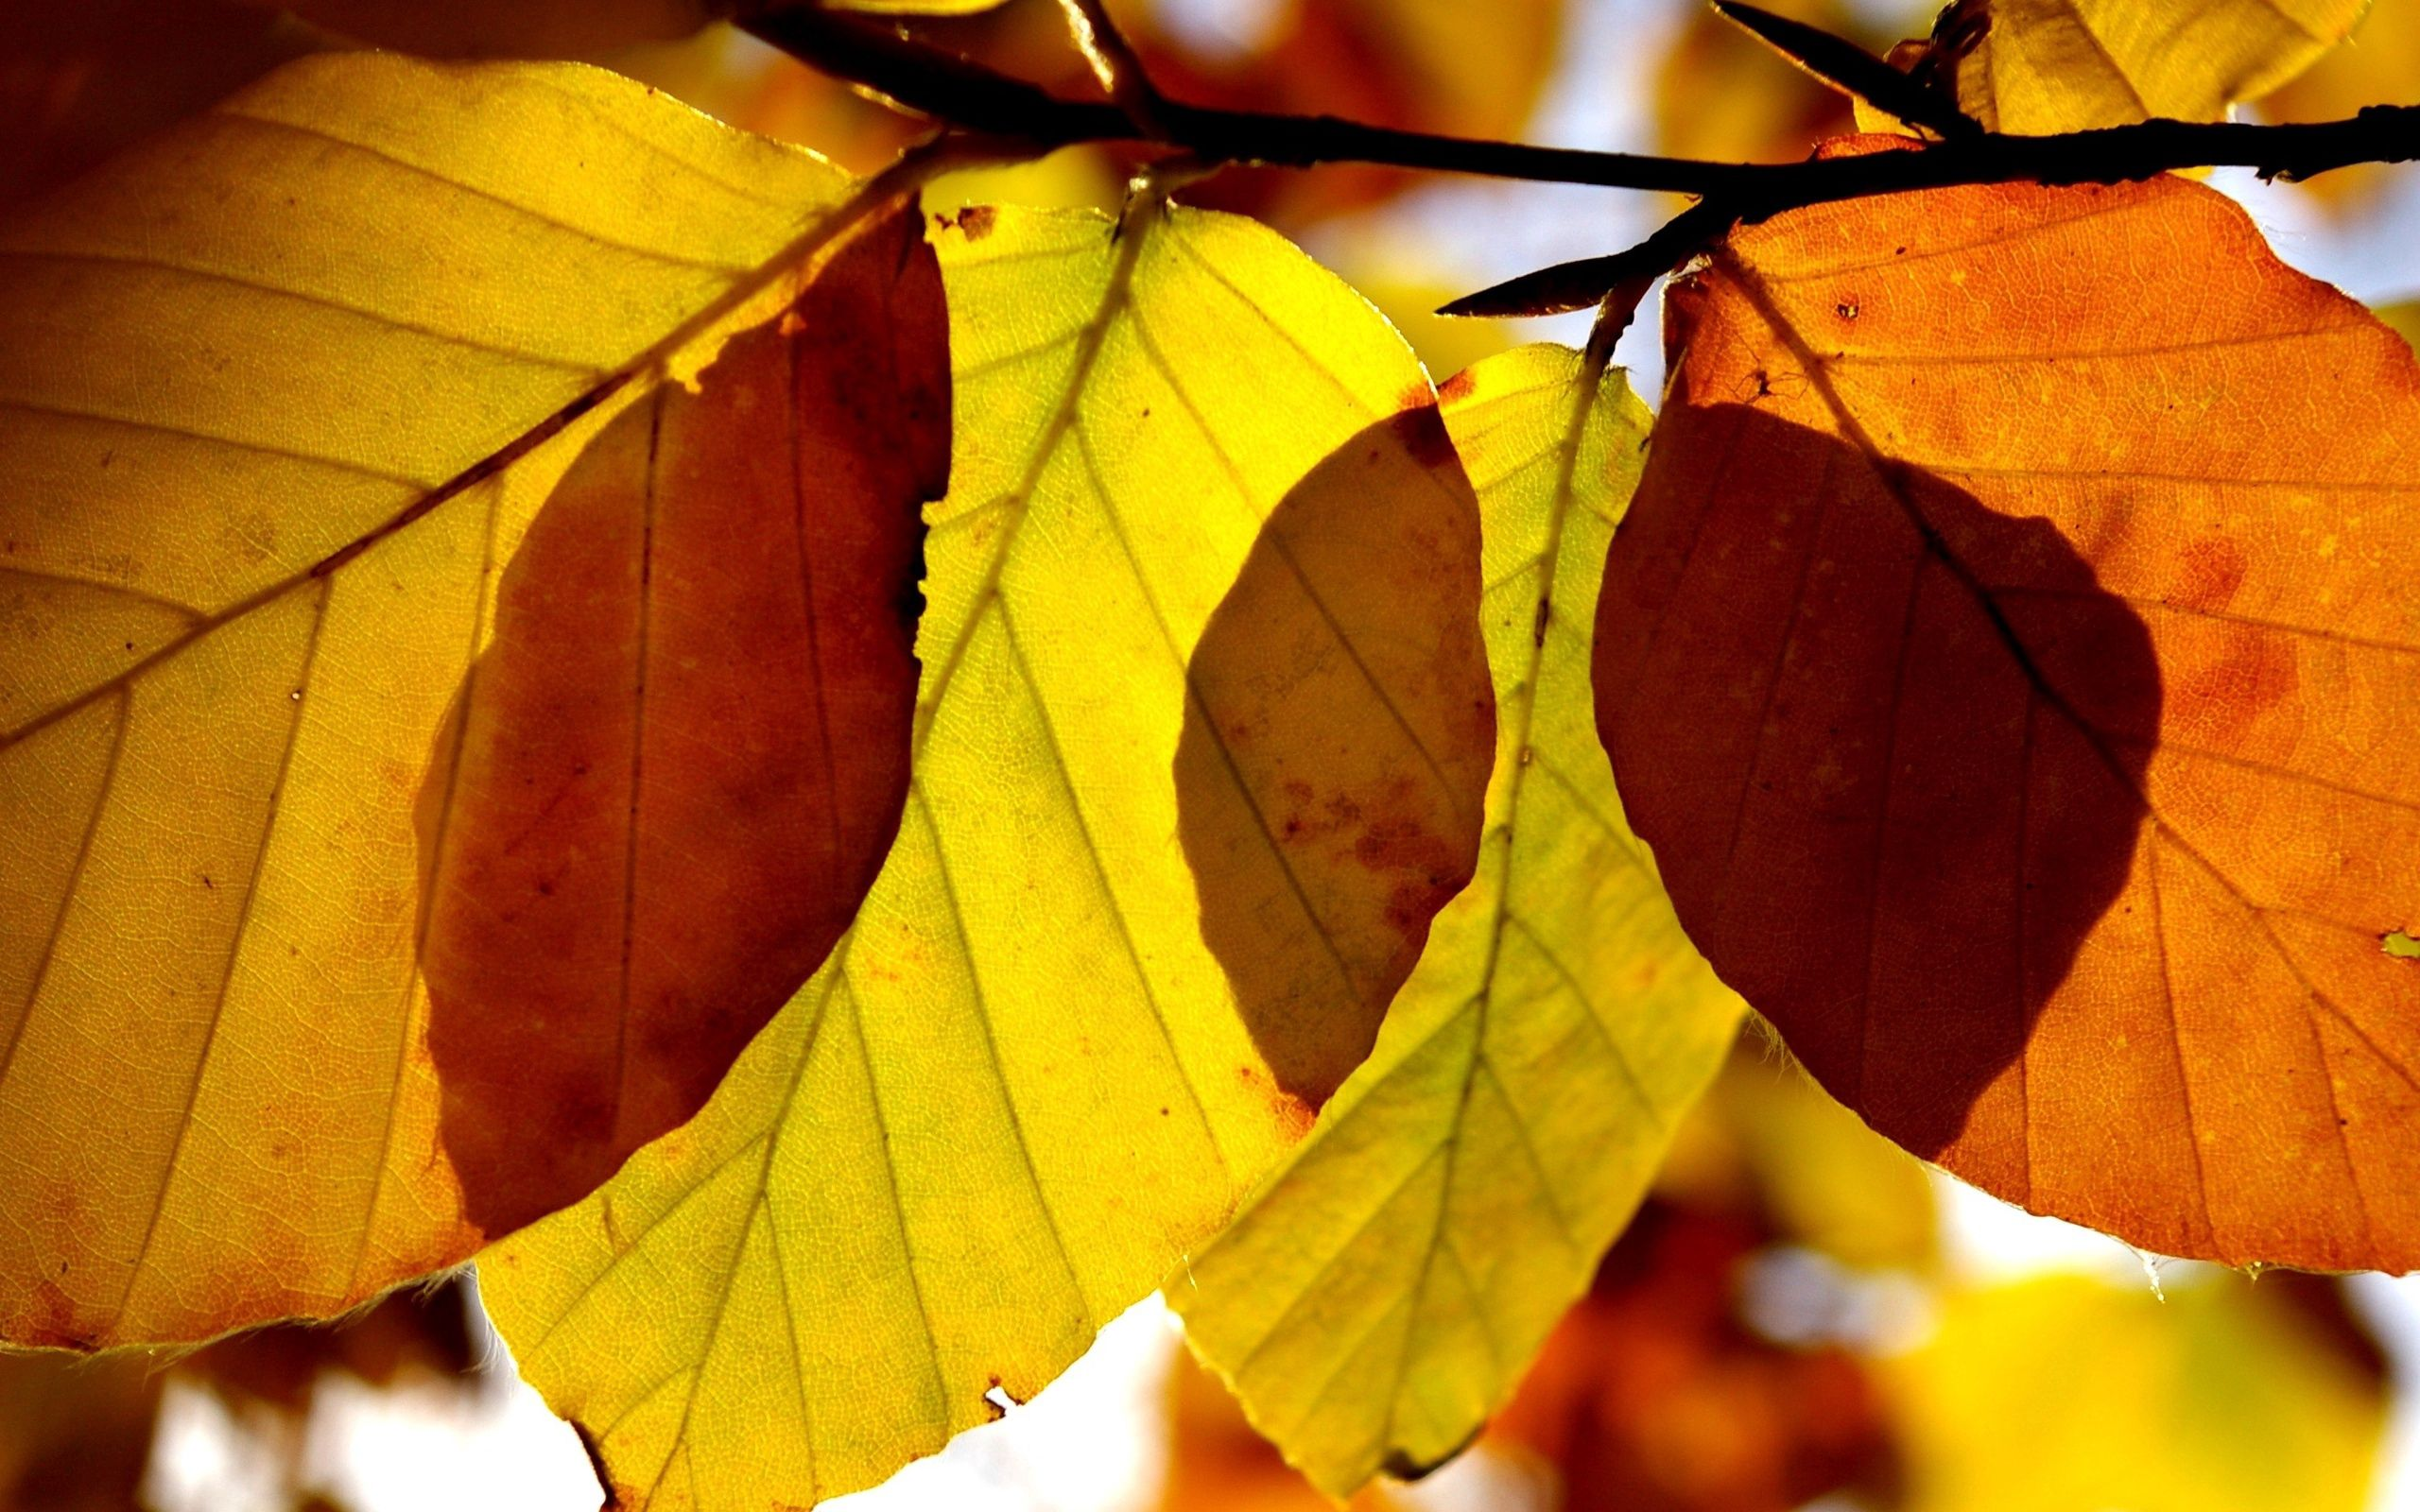 113210 download wallpaper Macro, Leaves, Form, Autumn, Branch screensavers and pictures for free